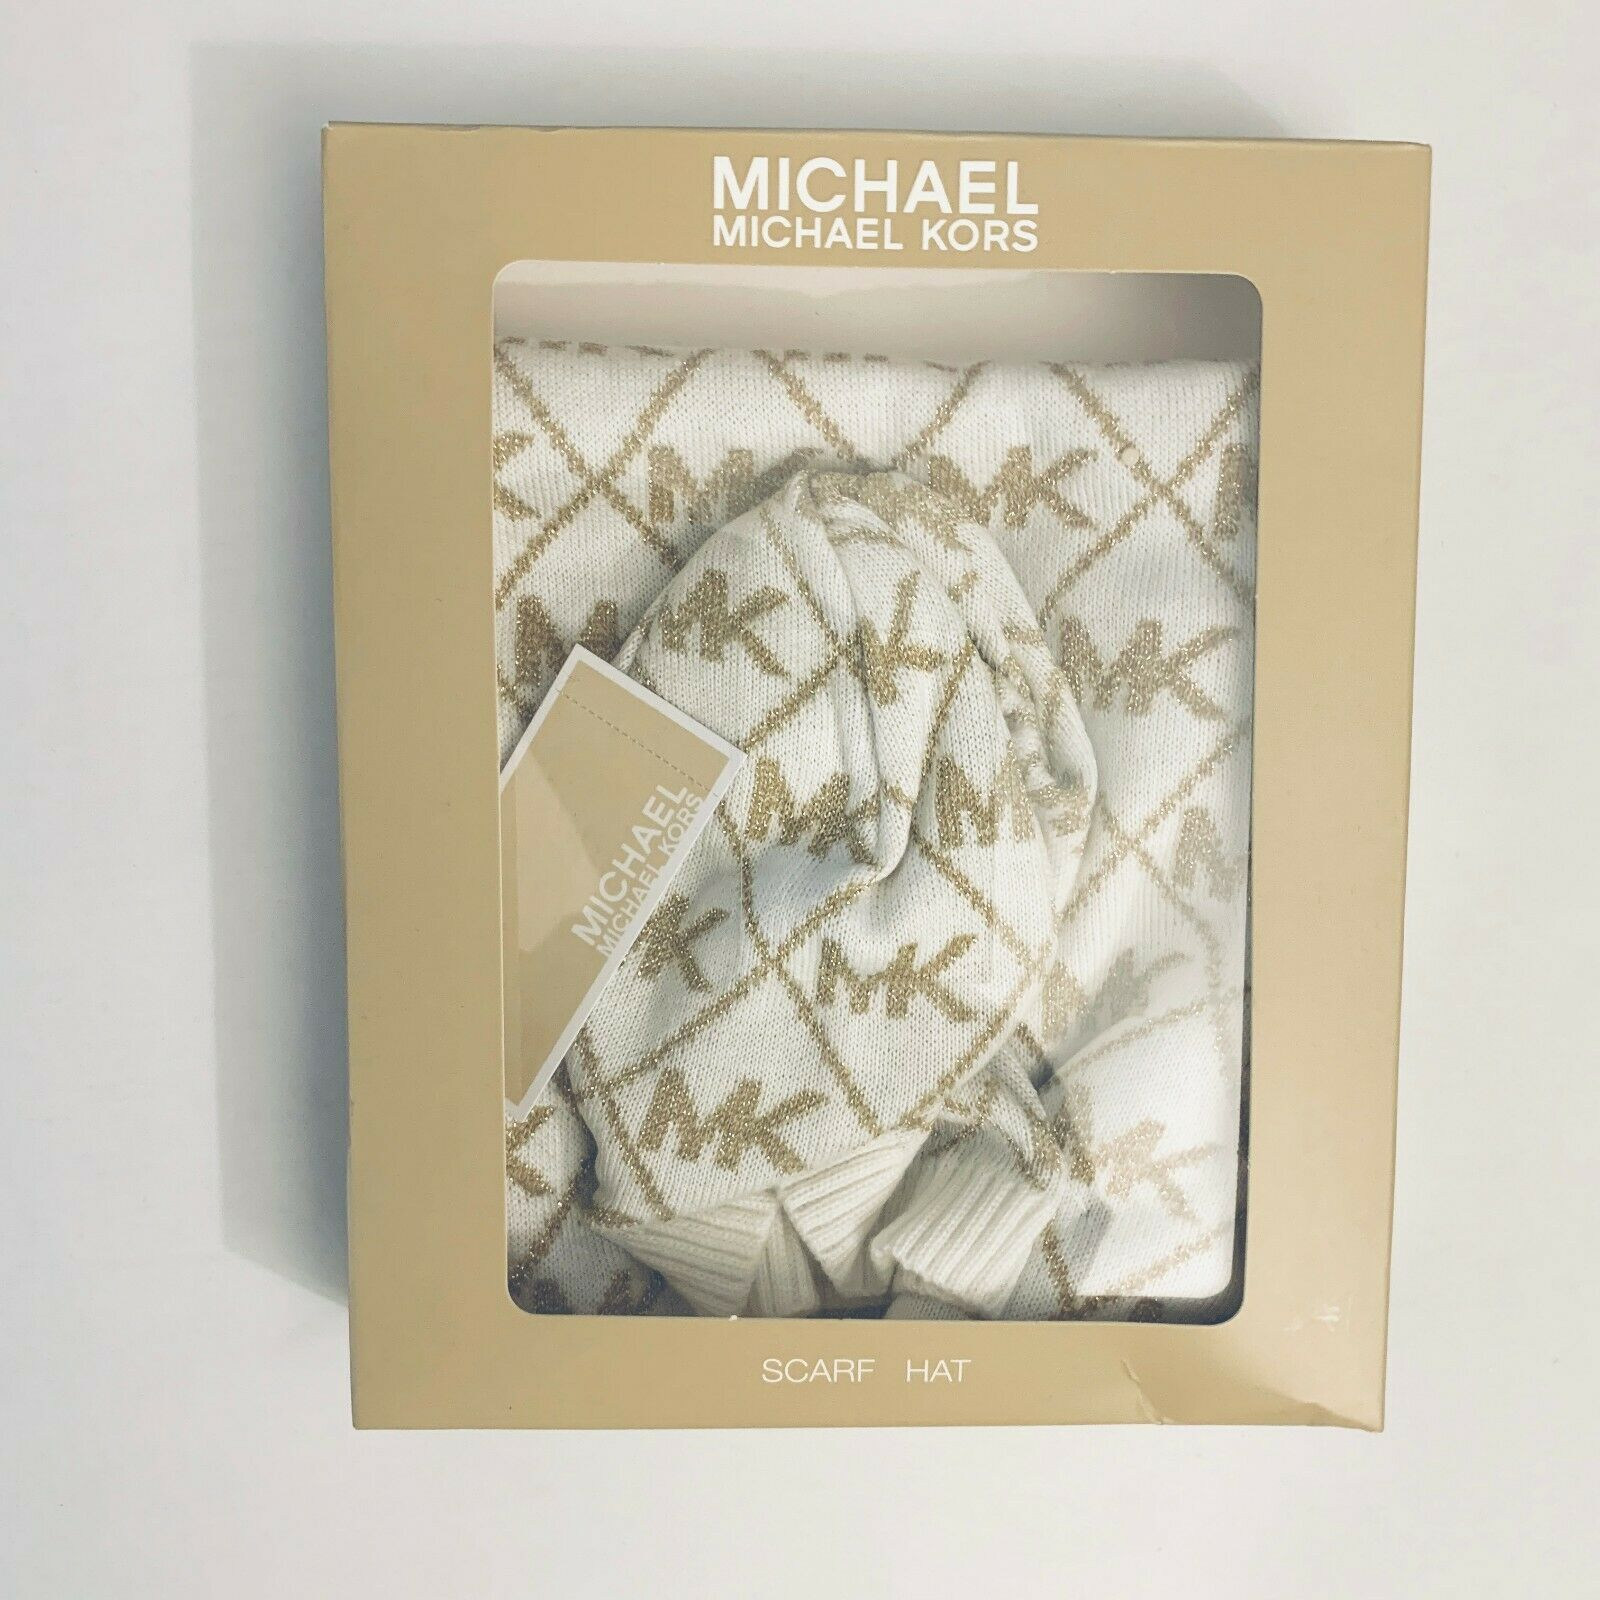 Michael Kors Womens Michael Kors White and Gold Hat and Scarf Gift Set